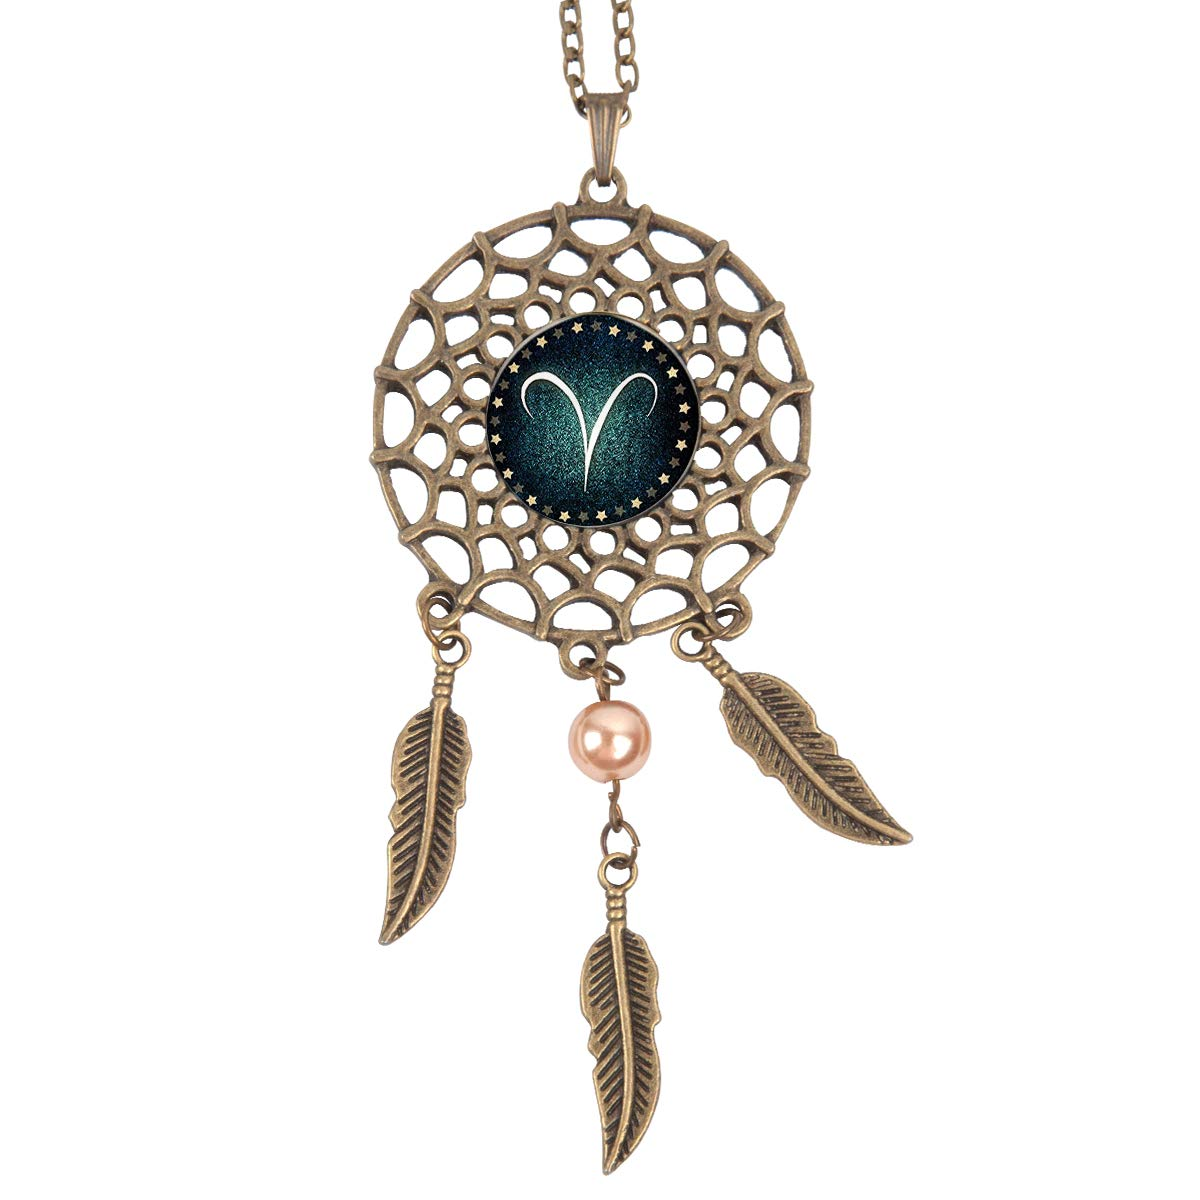 Queen Area Dream Catcher Necklace Aries Pendant Dangling Feather Tassel Bead Charm Chain Jewelry for Women